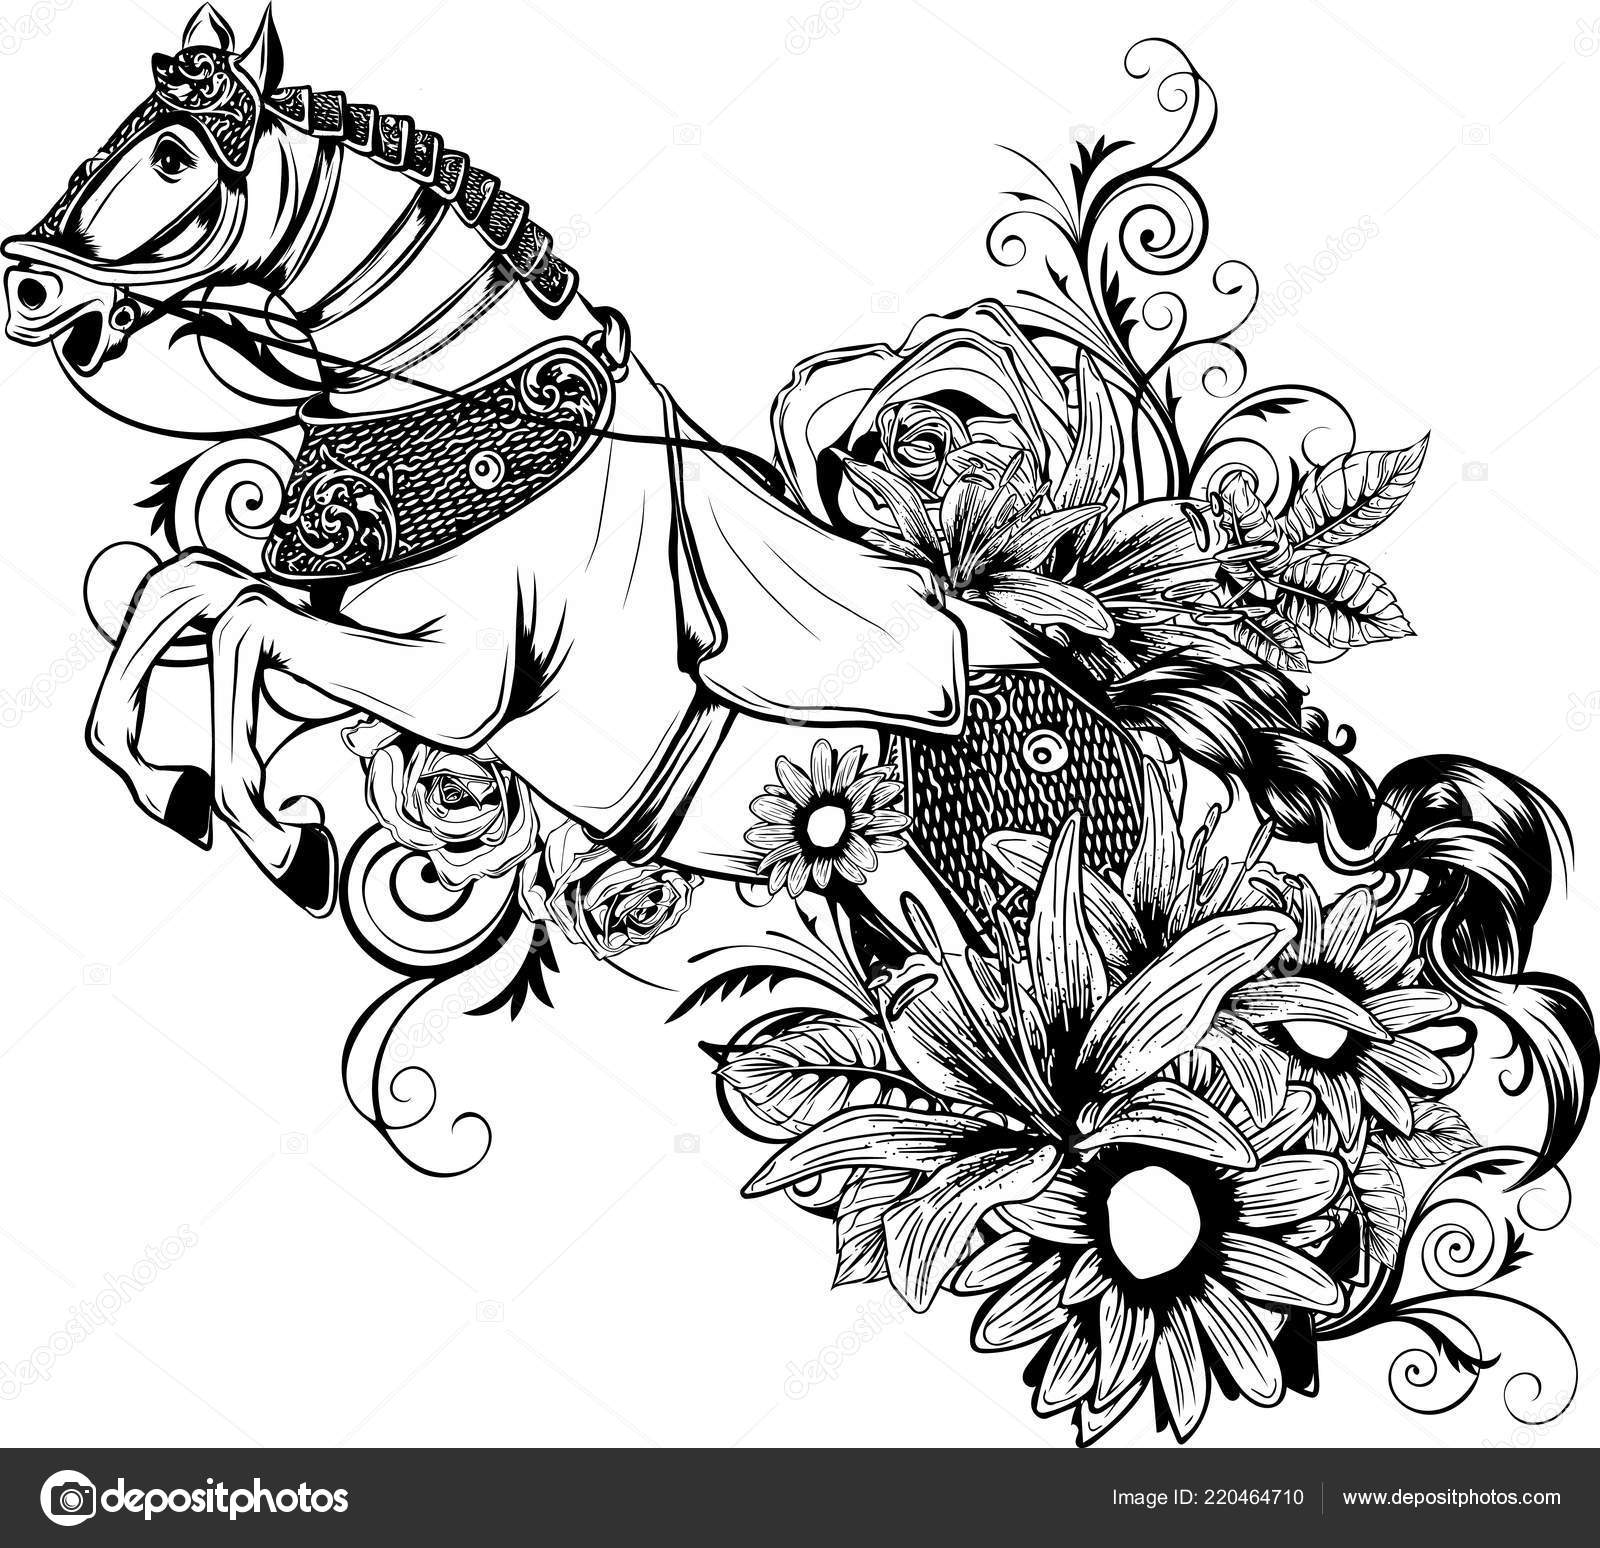 Silhouette Running Horse Illustration Stock Vector C Deanzangir Gmail Com 220464710